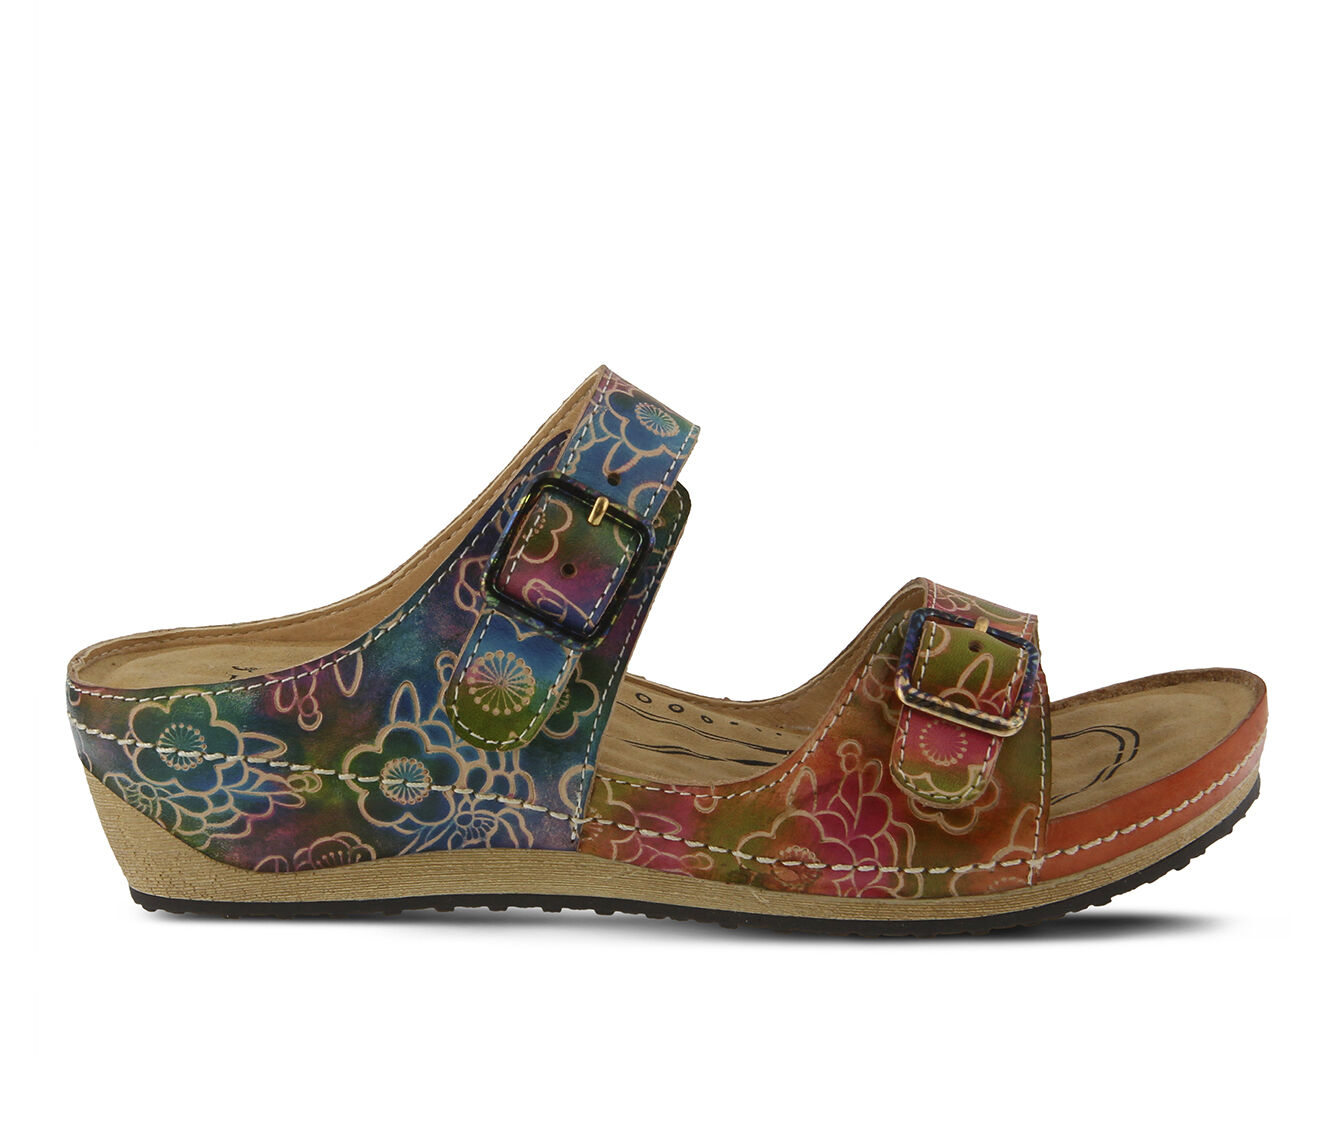 Women's L'ARTISTE Marilou Sandals Peach Multi